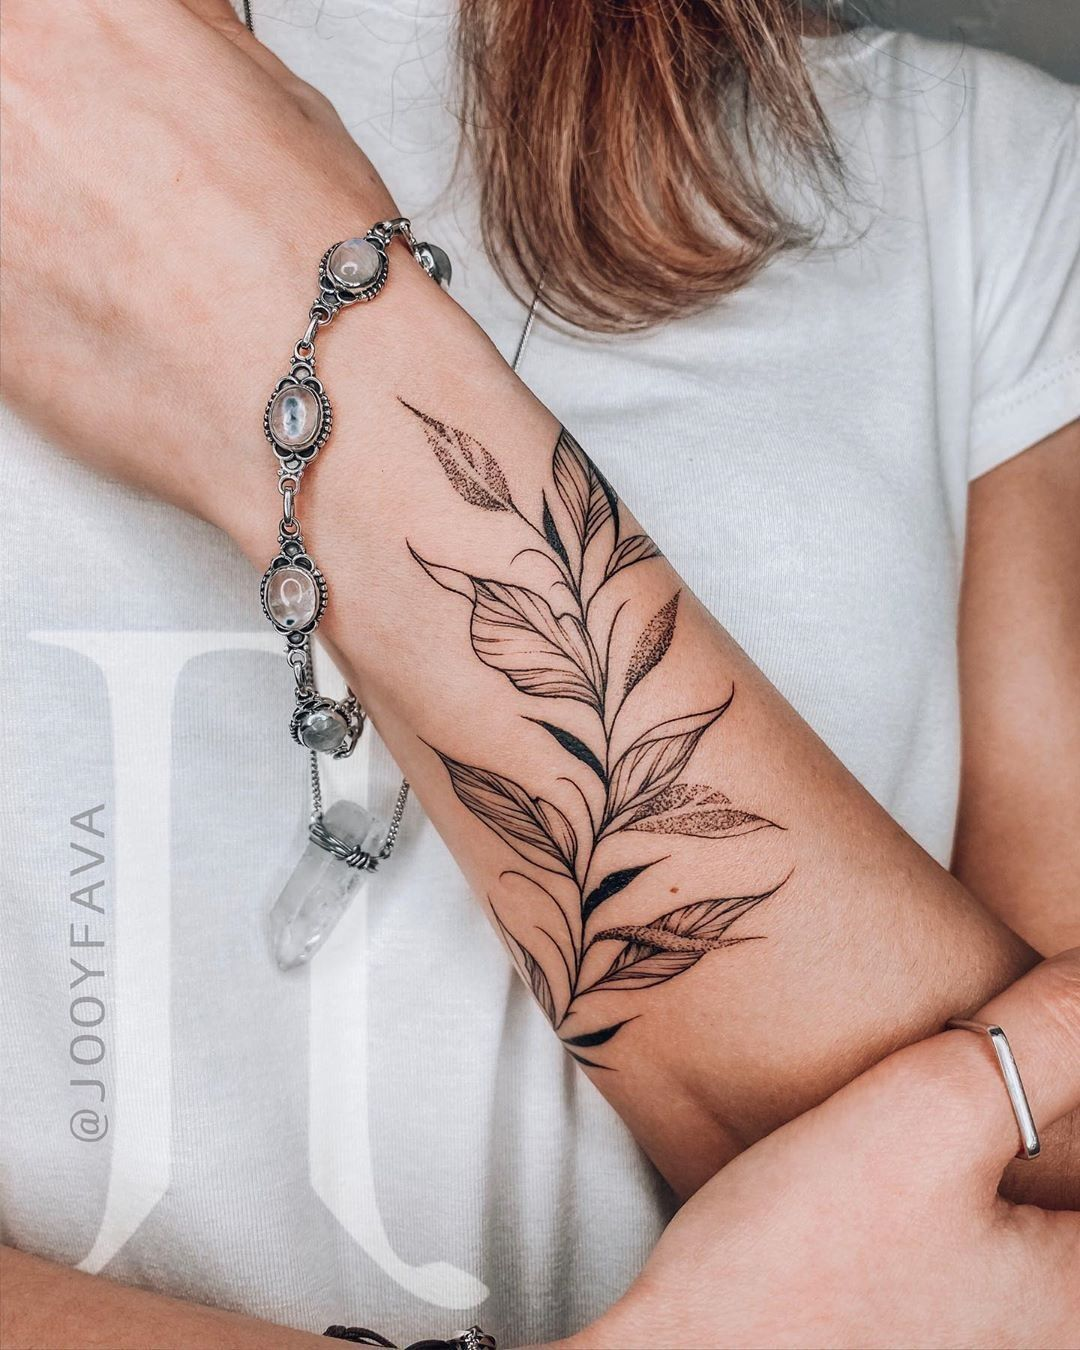 tatouage #tattoo tatouage masculina #tattoomasculina Tags: #tattooforwomen, #tattooideas, in 2020 | Tattoos for guys, Tattoos for women, Inspirational tattoos